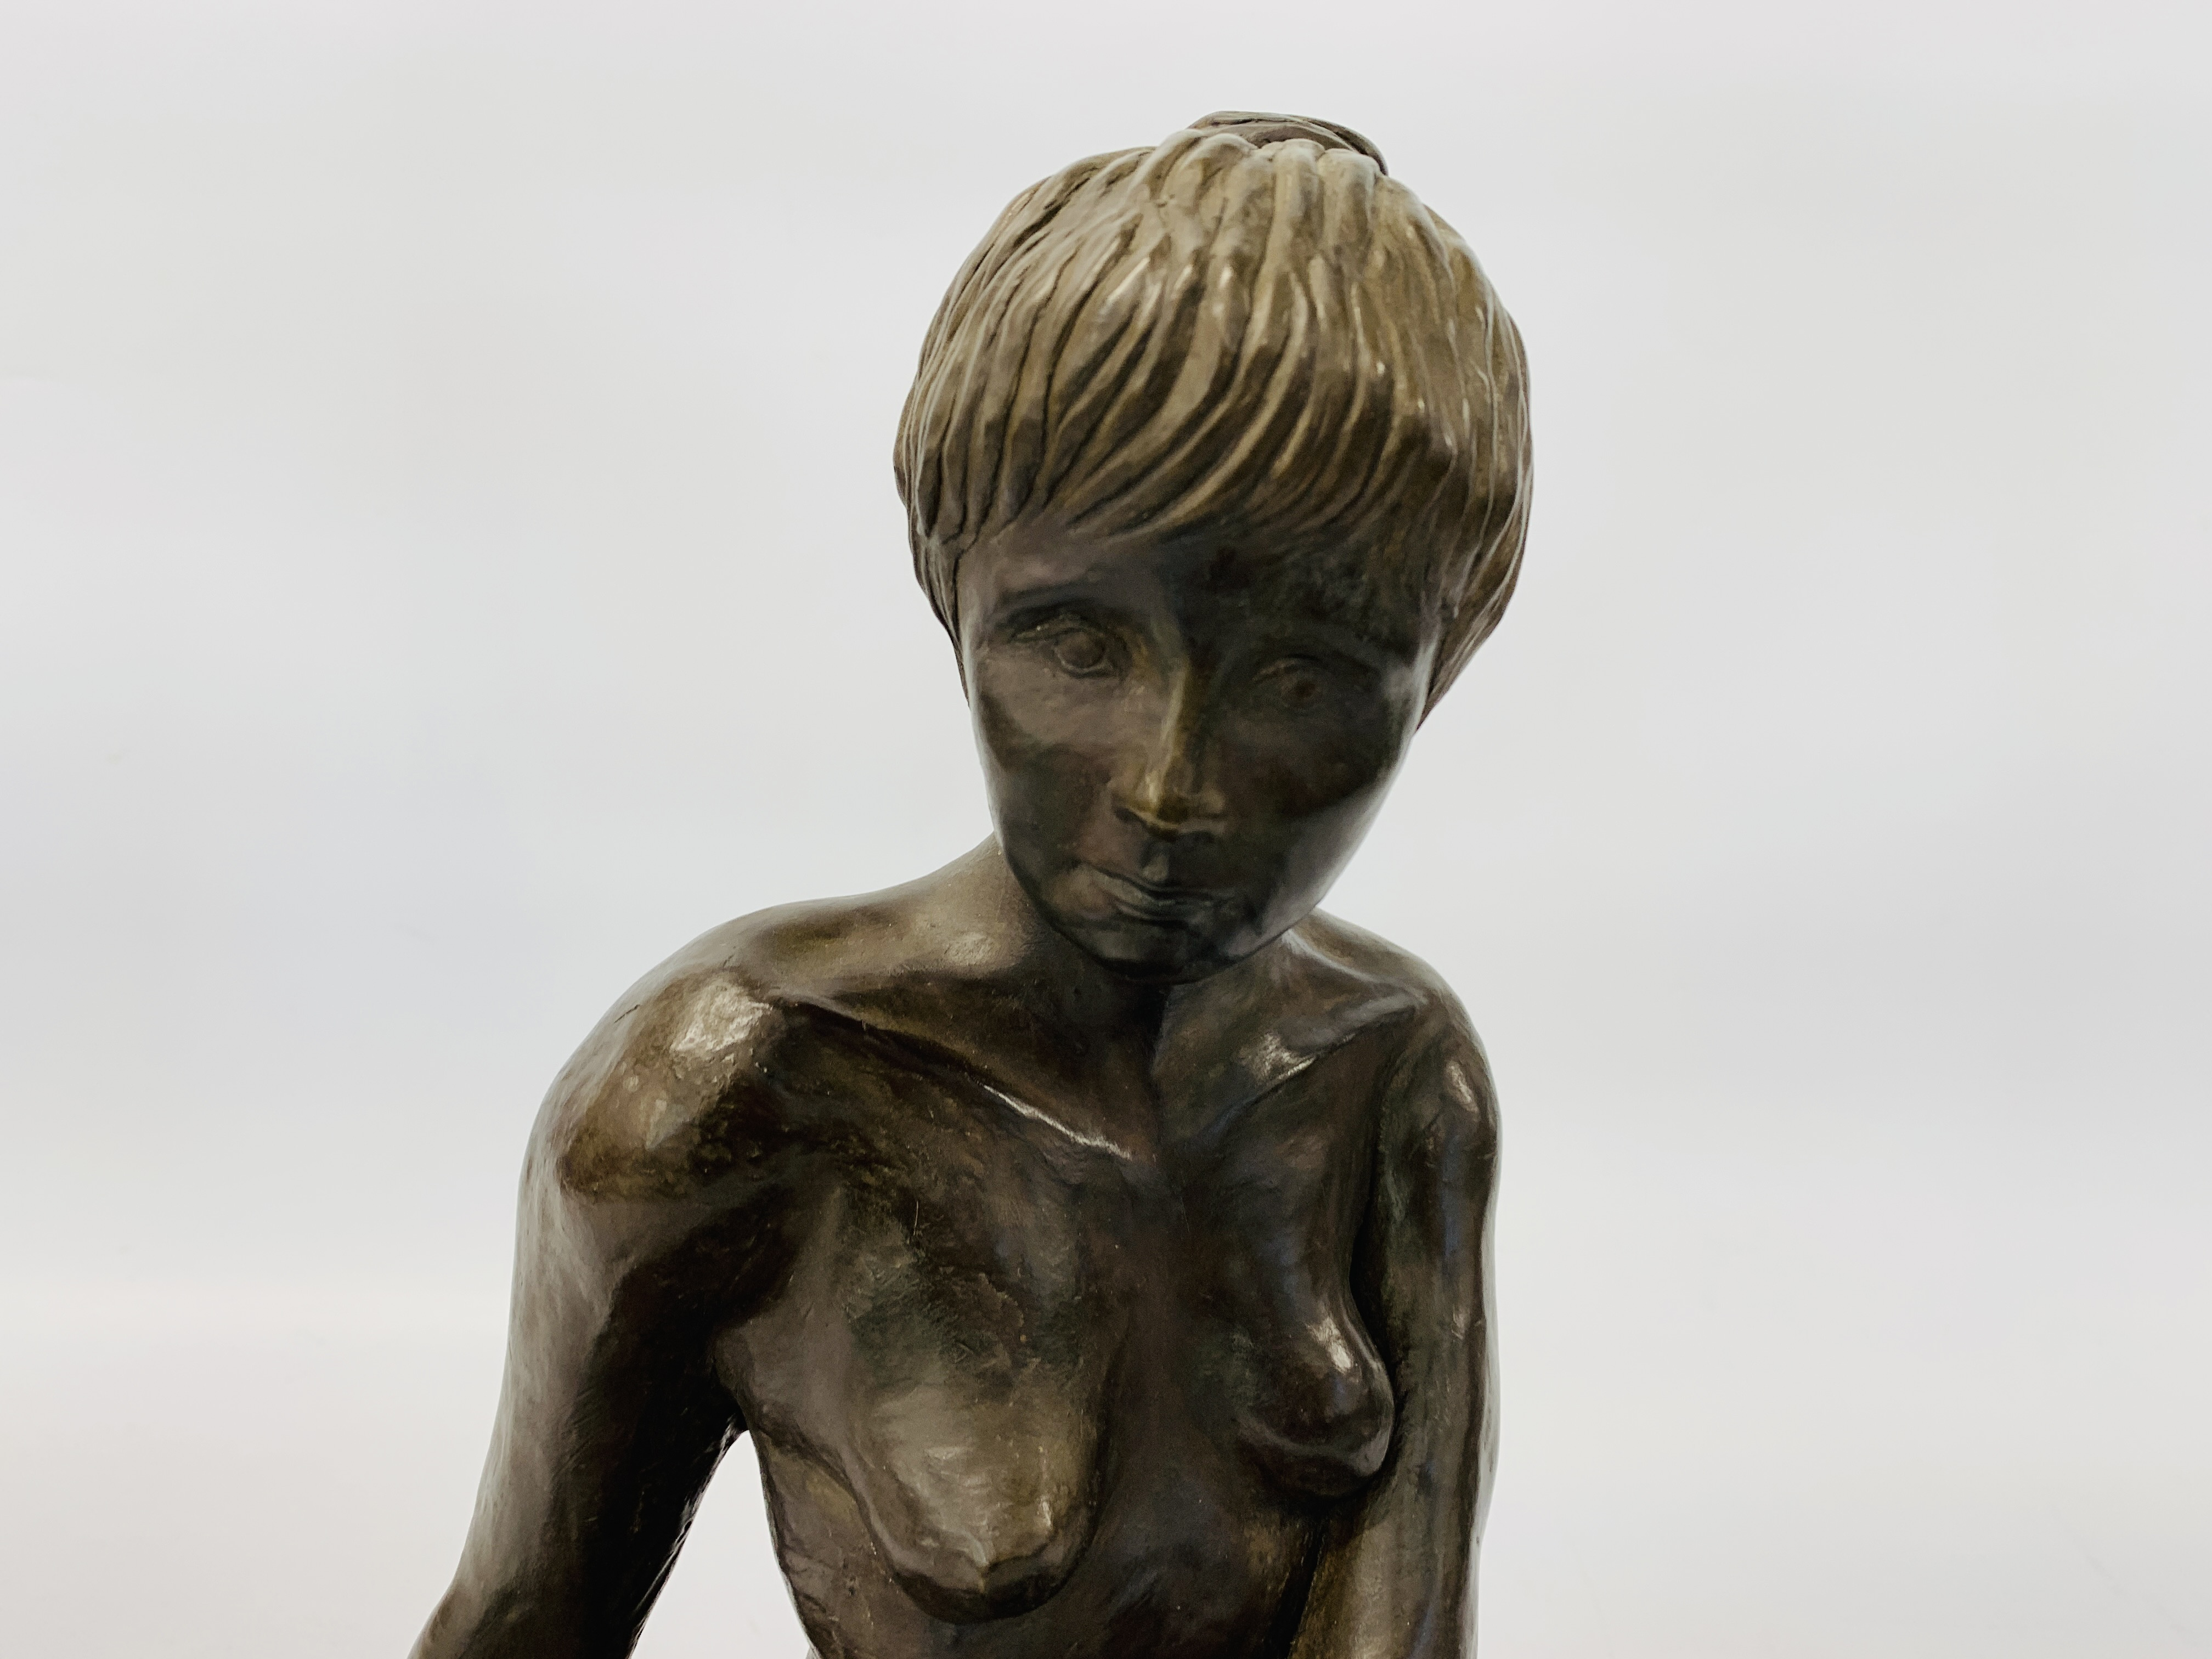 A BRONZED RESIN SCULPTURE OF A SEATED WOMAN BY SONIA DOBBS ON PINE BASE - HEIGHT 33.5 CM. - Image 2 of 8